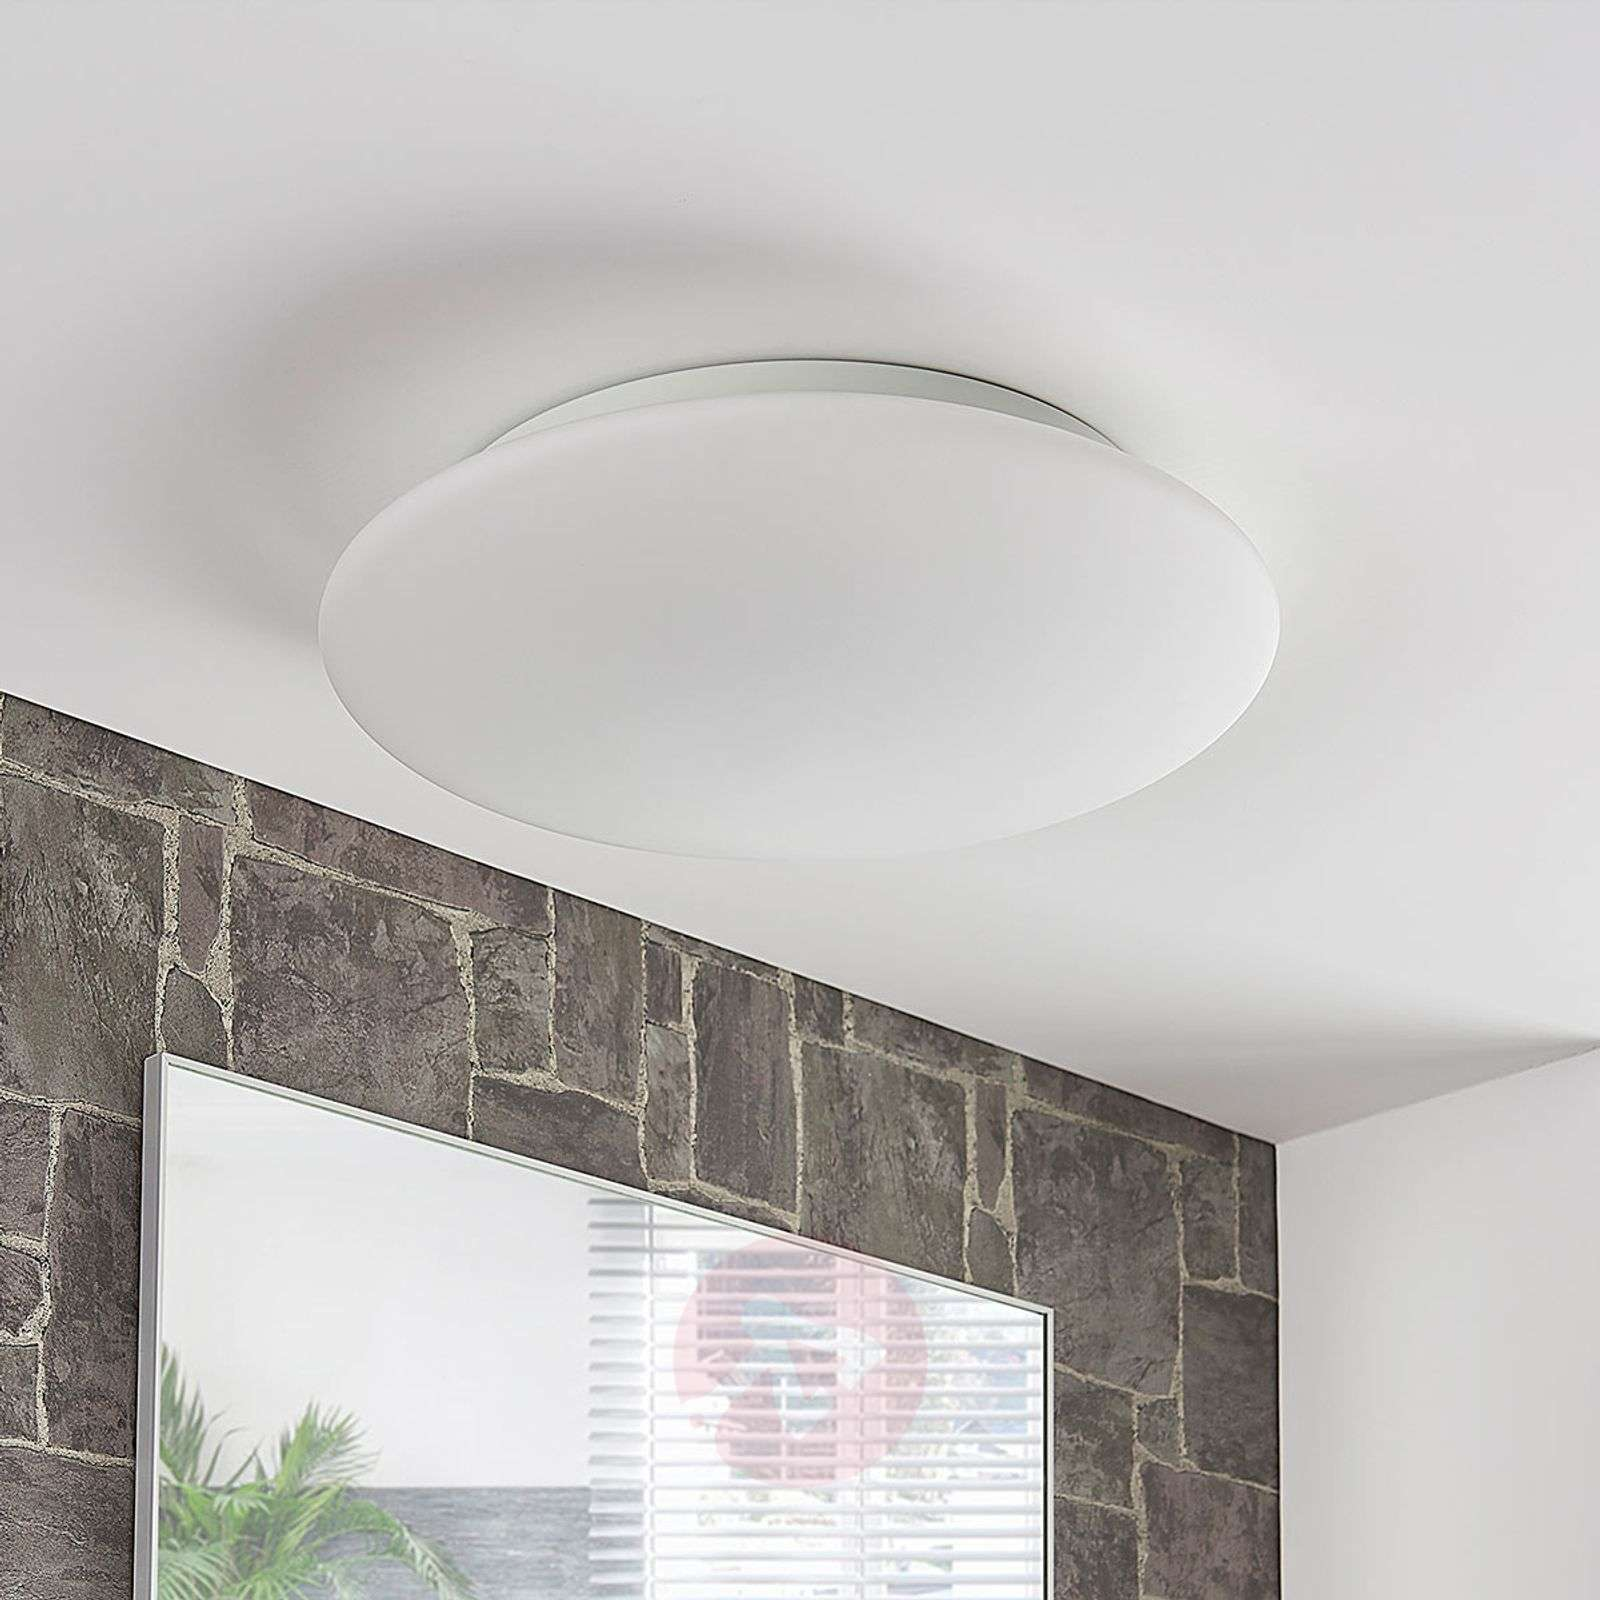 Three-way dimmable LED ceiling light Toan, IP44 | Lights.ie